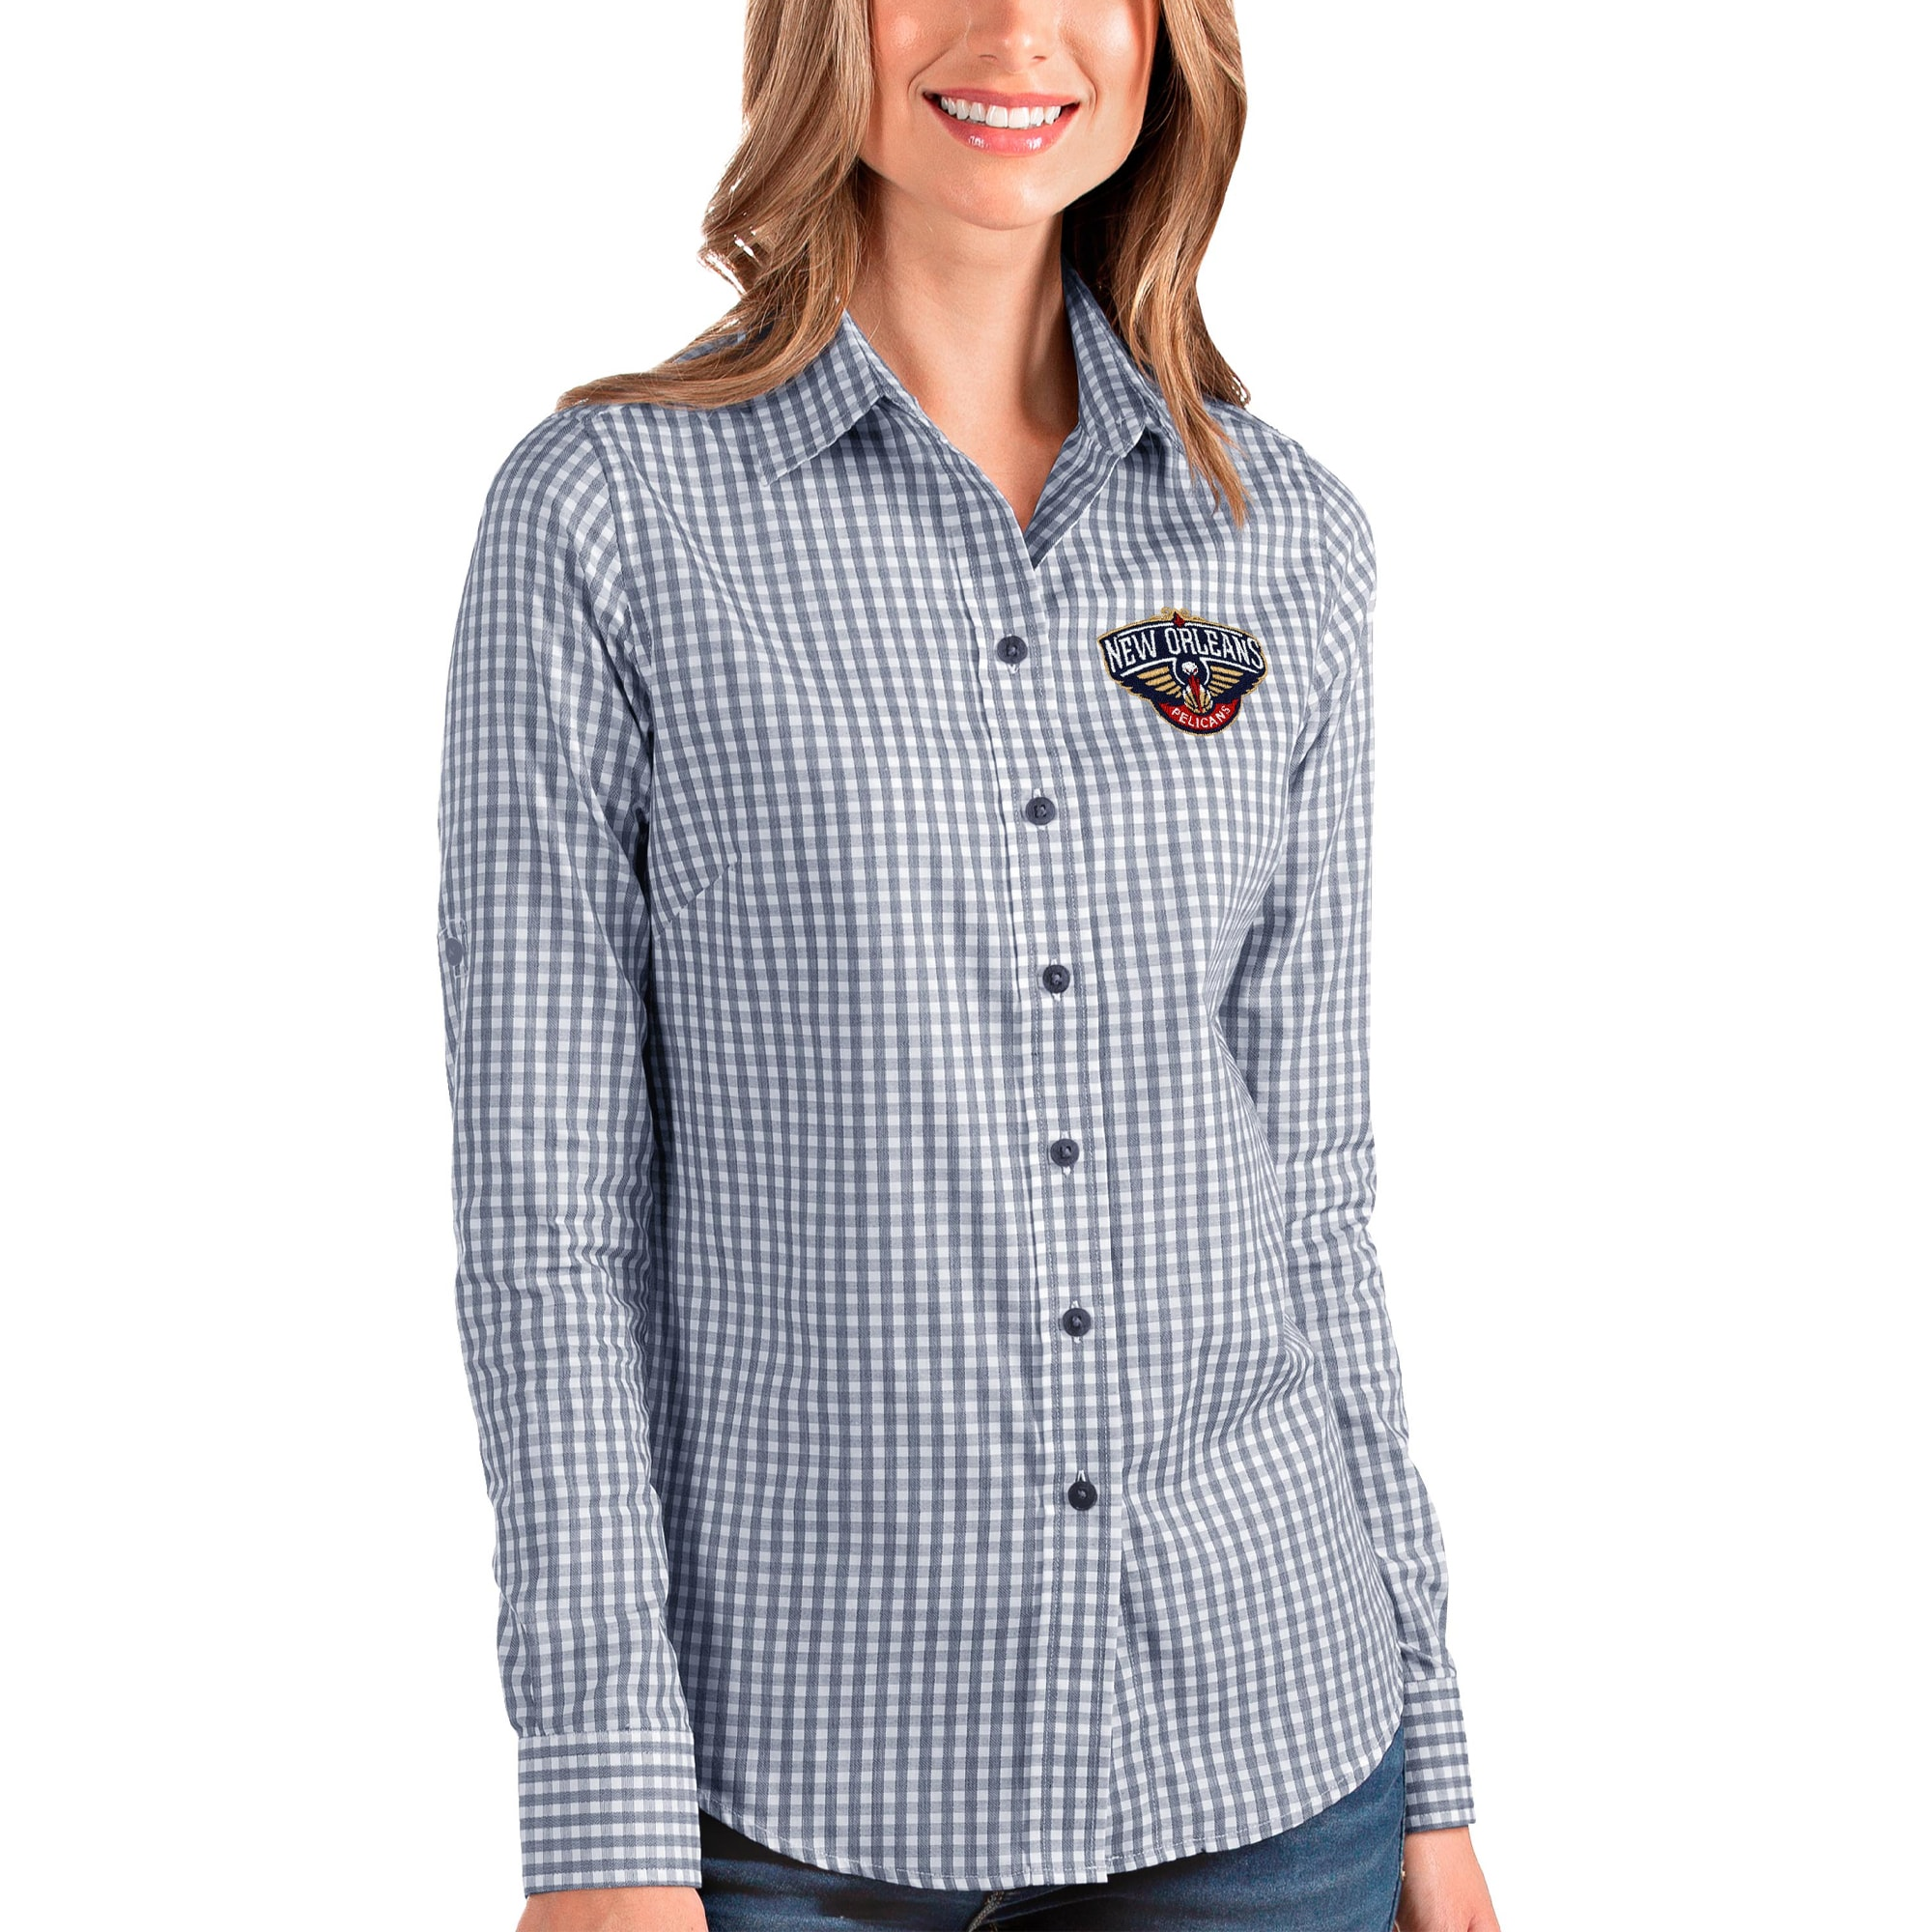 New Orleans Pelicans Antigua Women's Structure Button-Up Long Sleeve Shirt - Navy/White